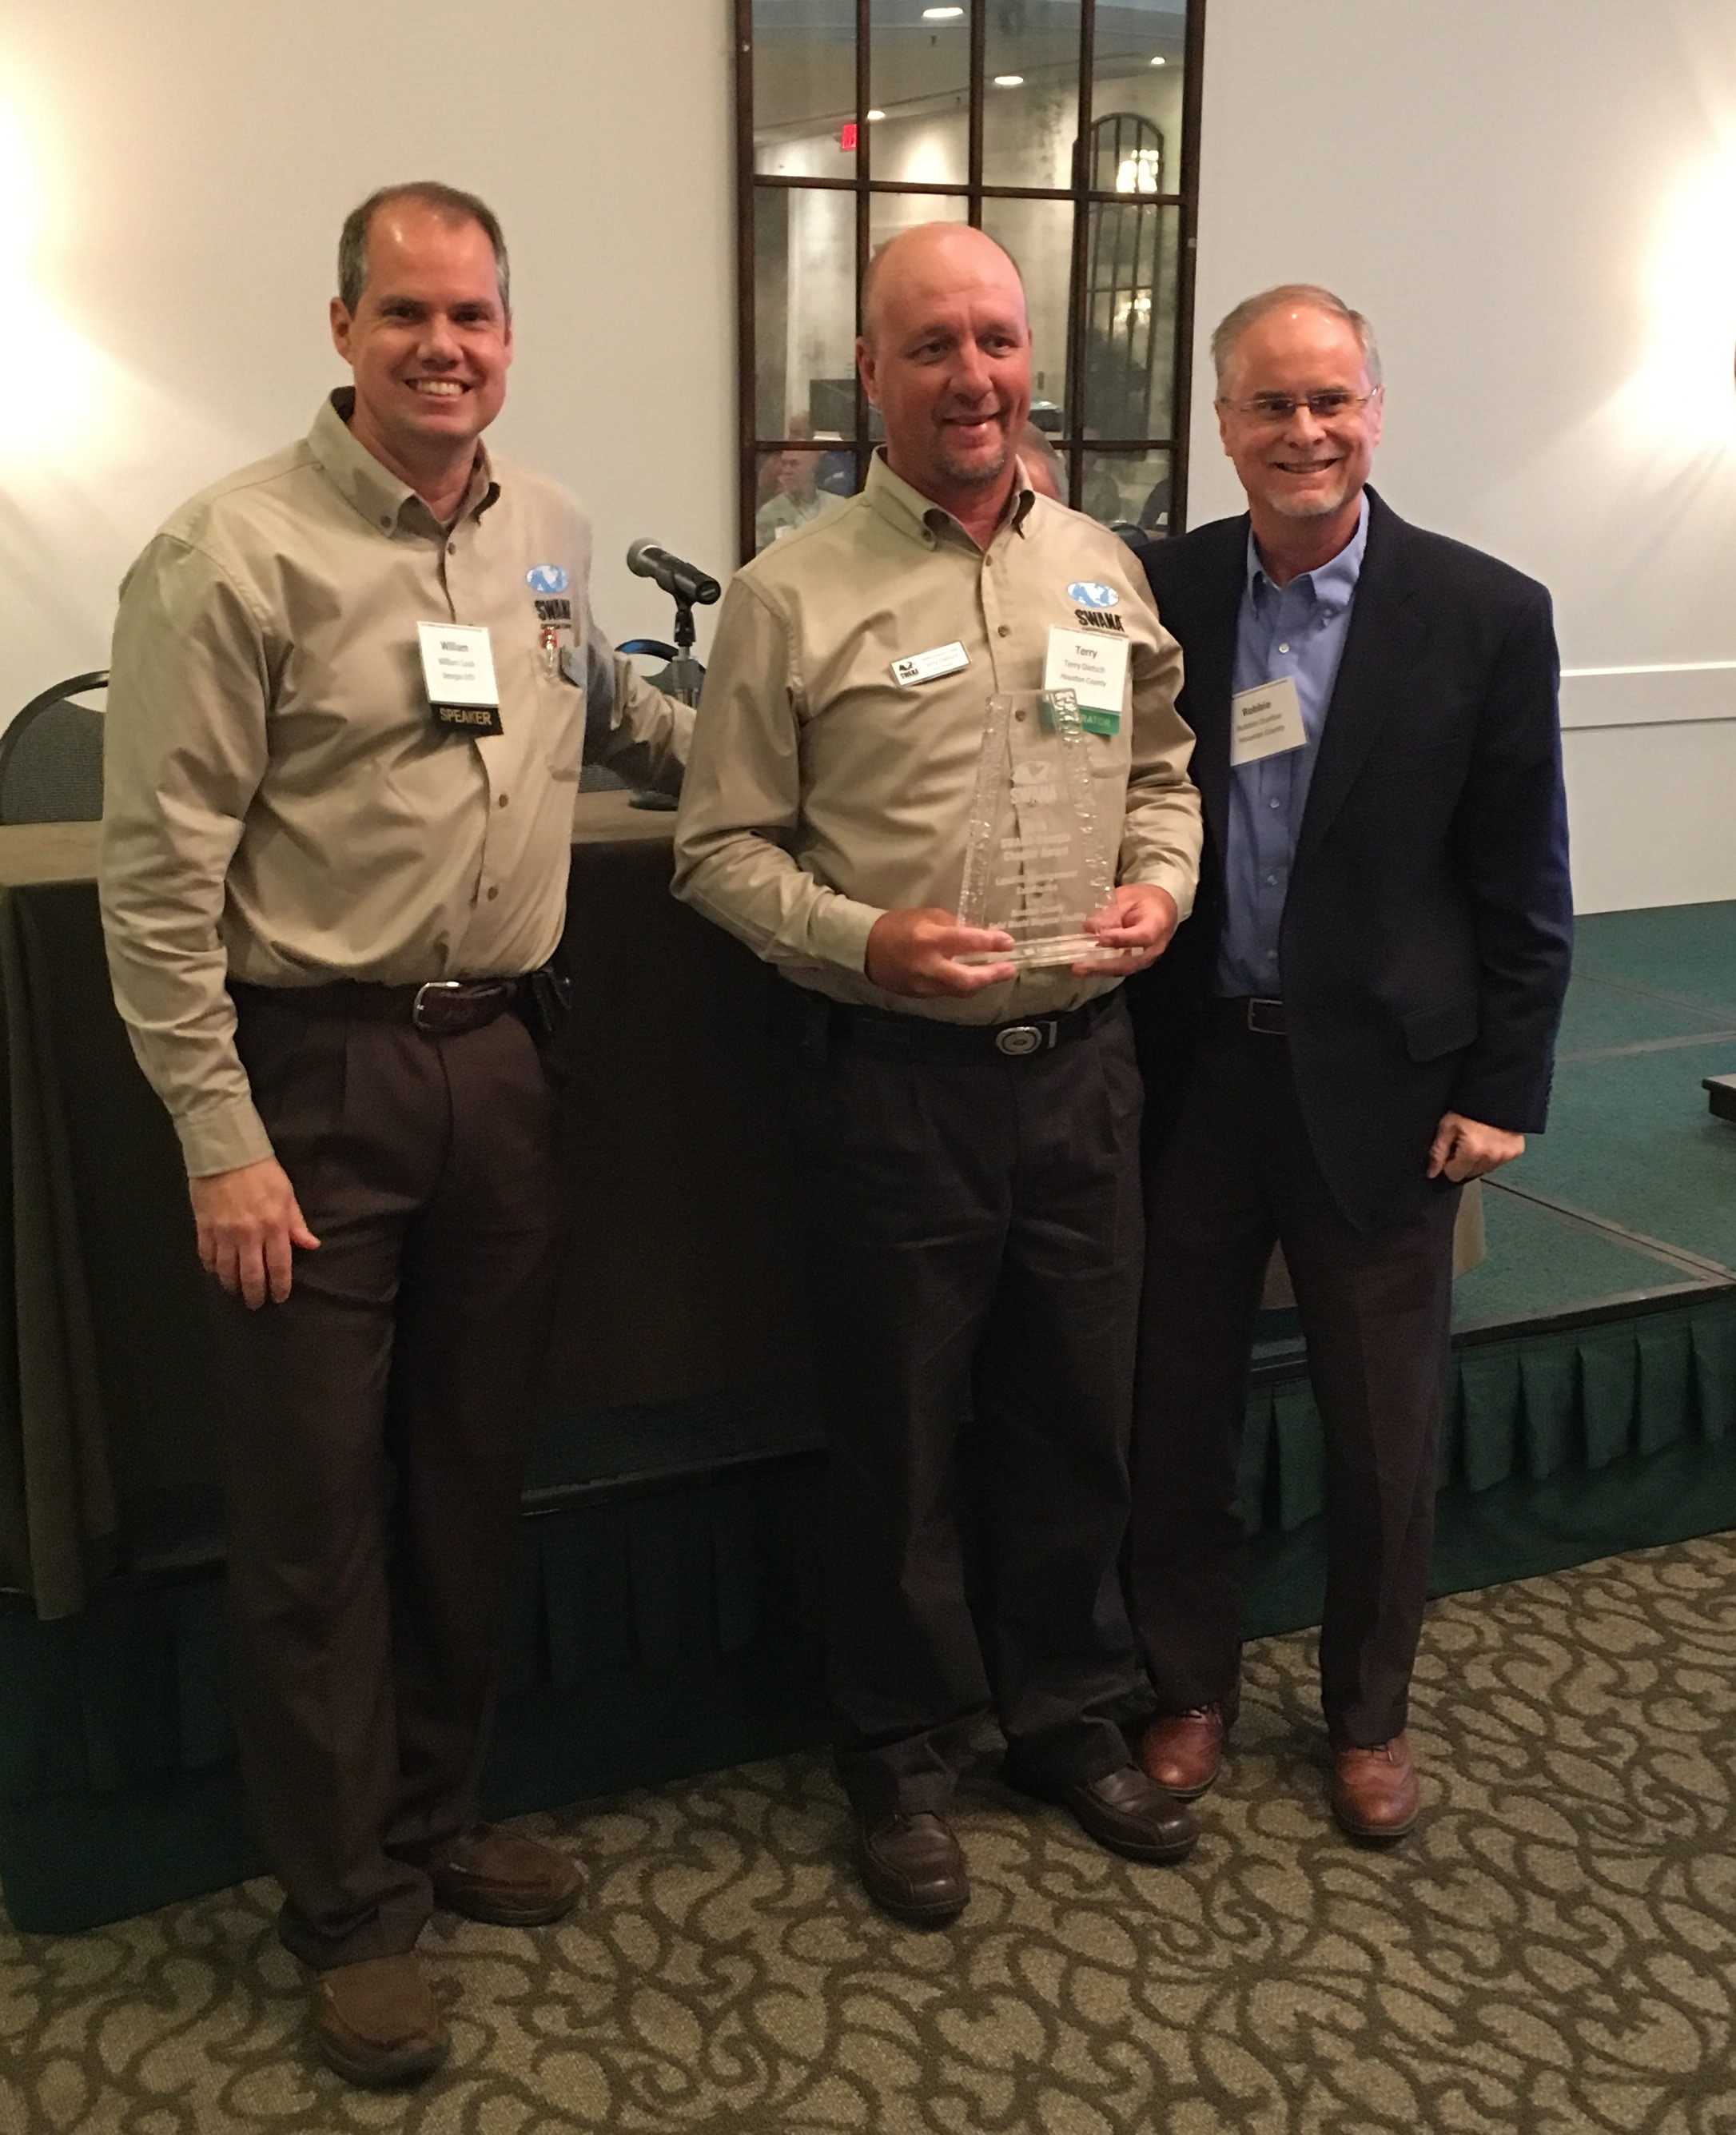 Mr. Robbie Dunbar and Mr. Terry Dietsch of Houston County and Mr. William Cook of Georgia EPD Solid Waste Program were at the SWANA-Georgia Fall Conference Opening Luncheon at Sea Palms Resort on St. Simons Island to receive the award.